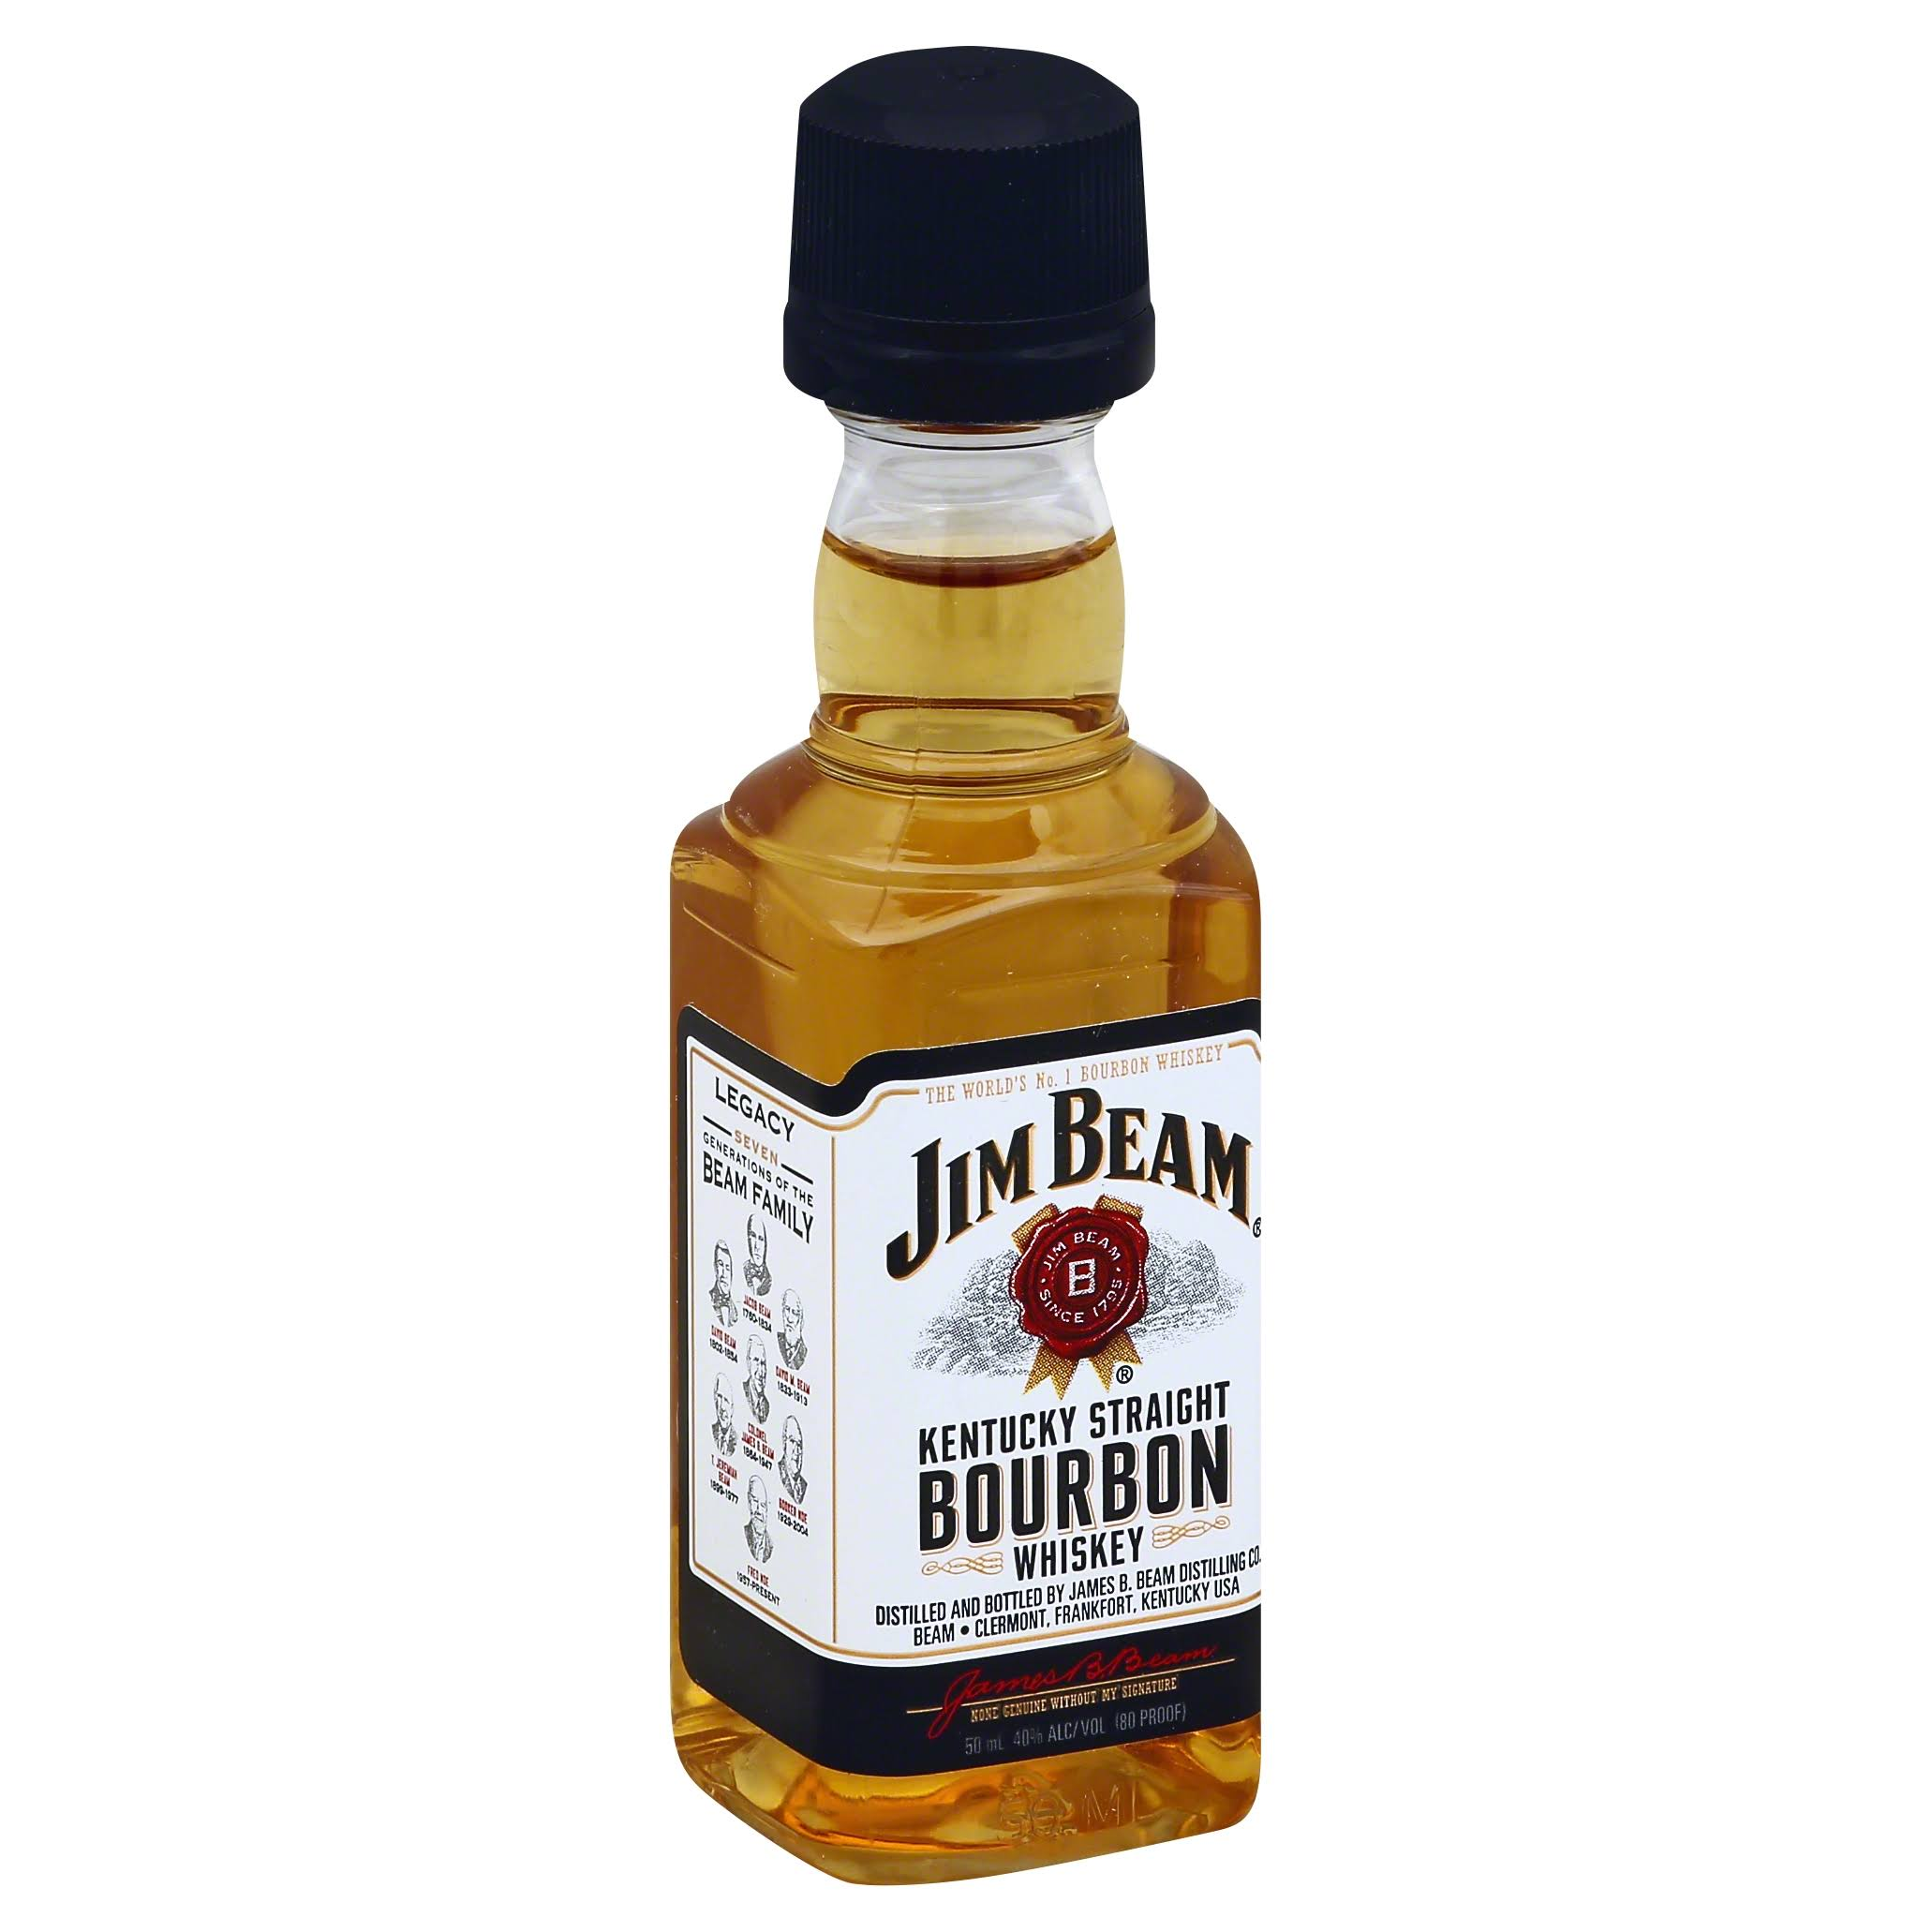 Jim Beam Bourbon Whiskey - 500ml